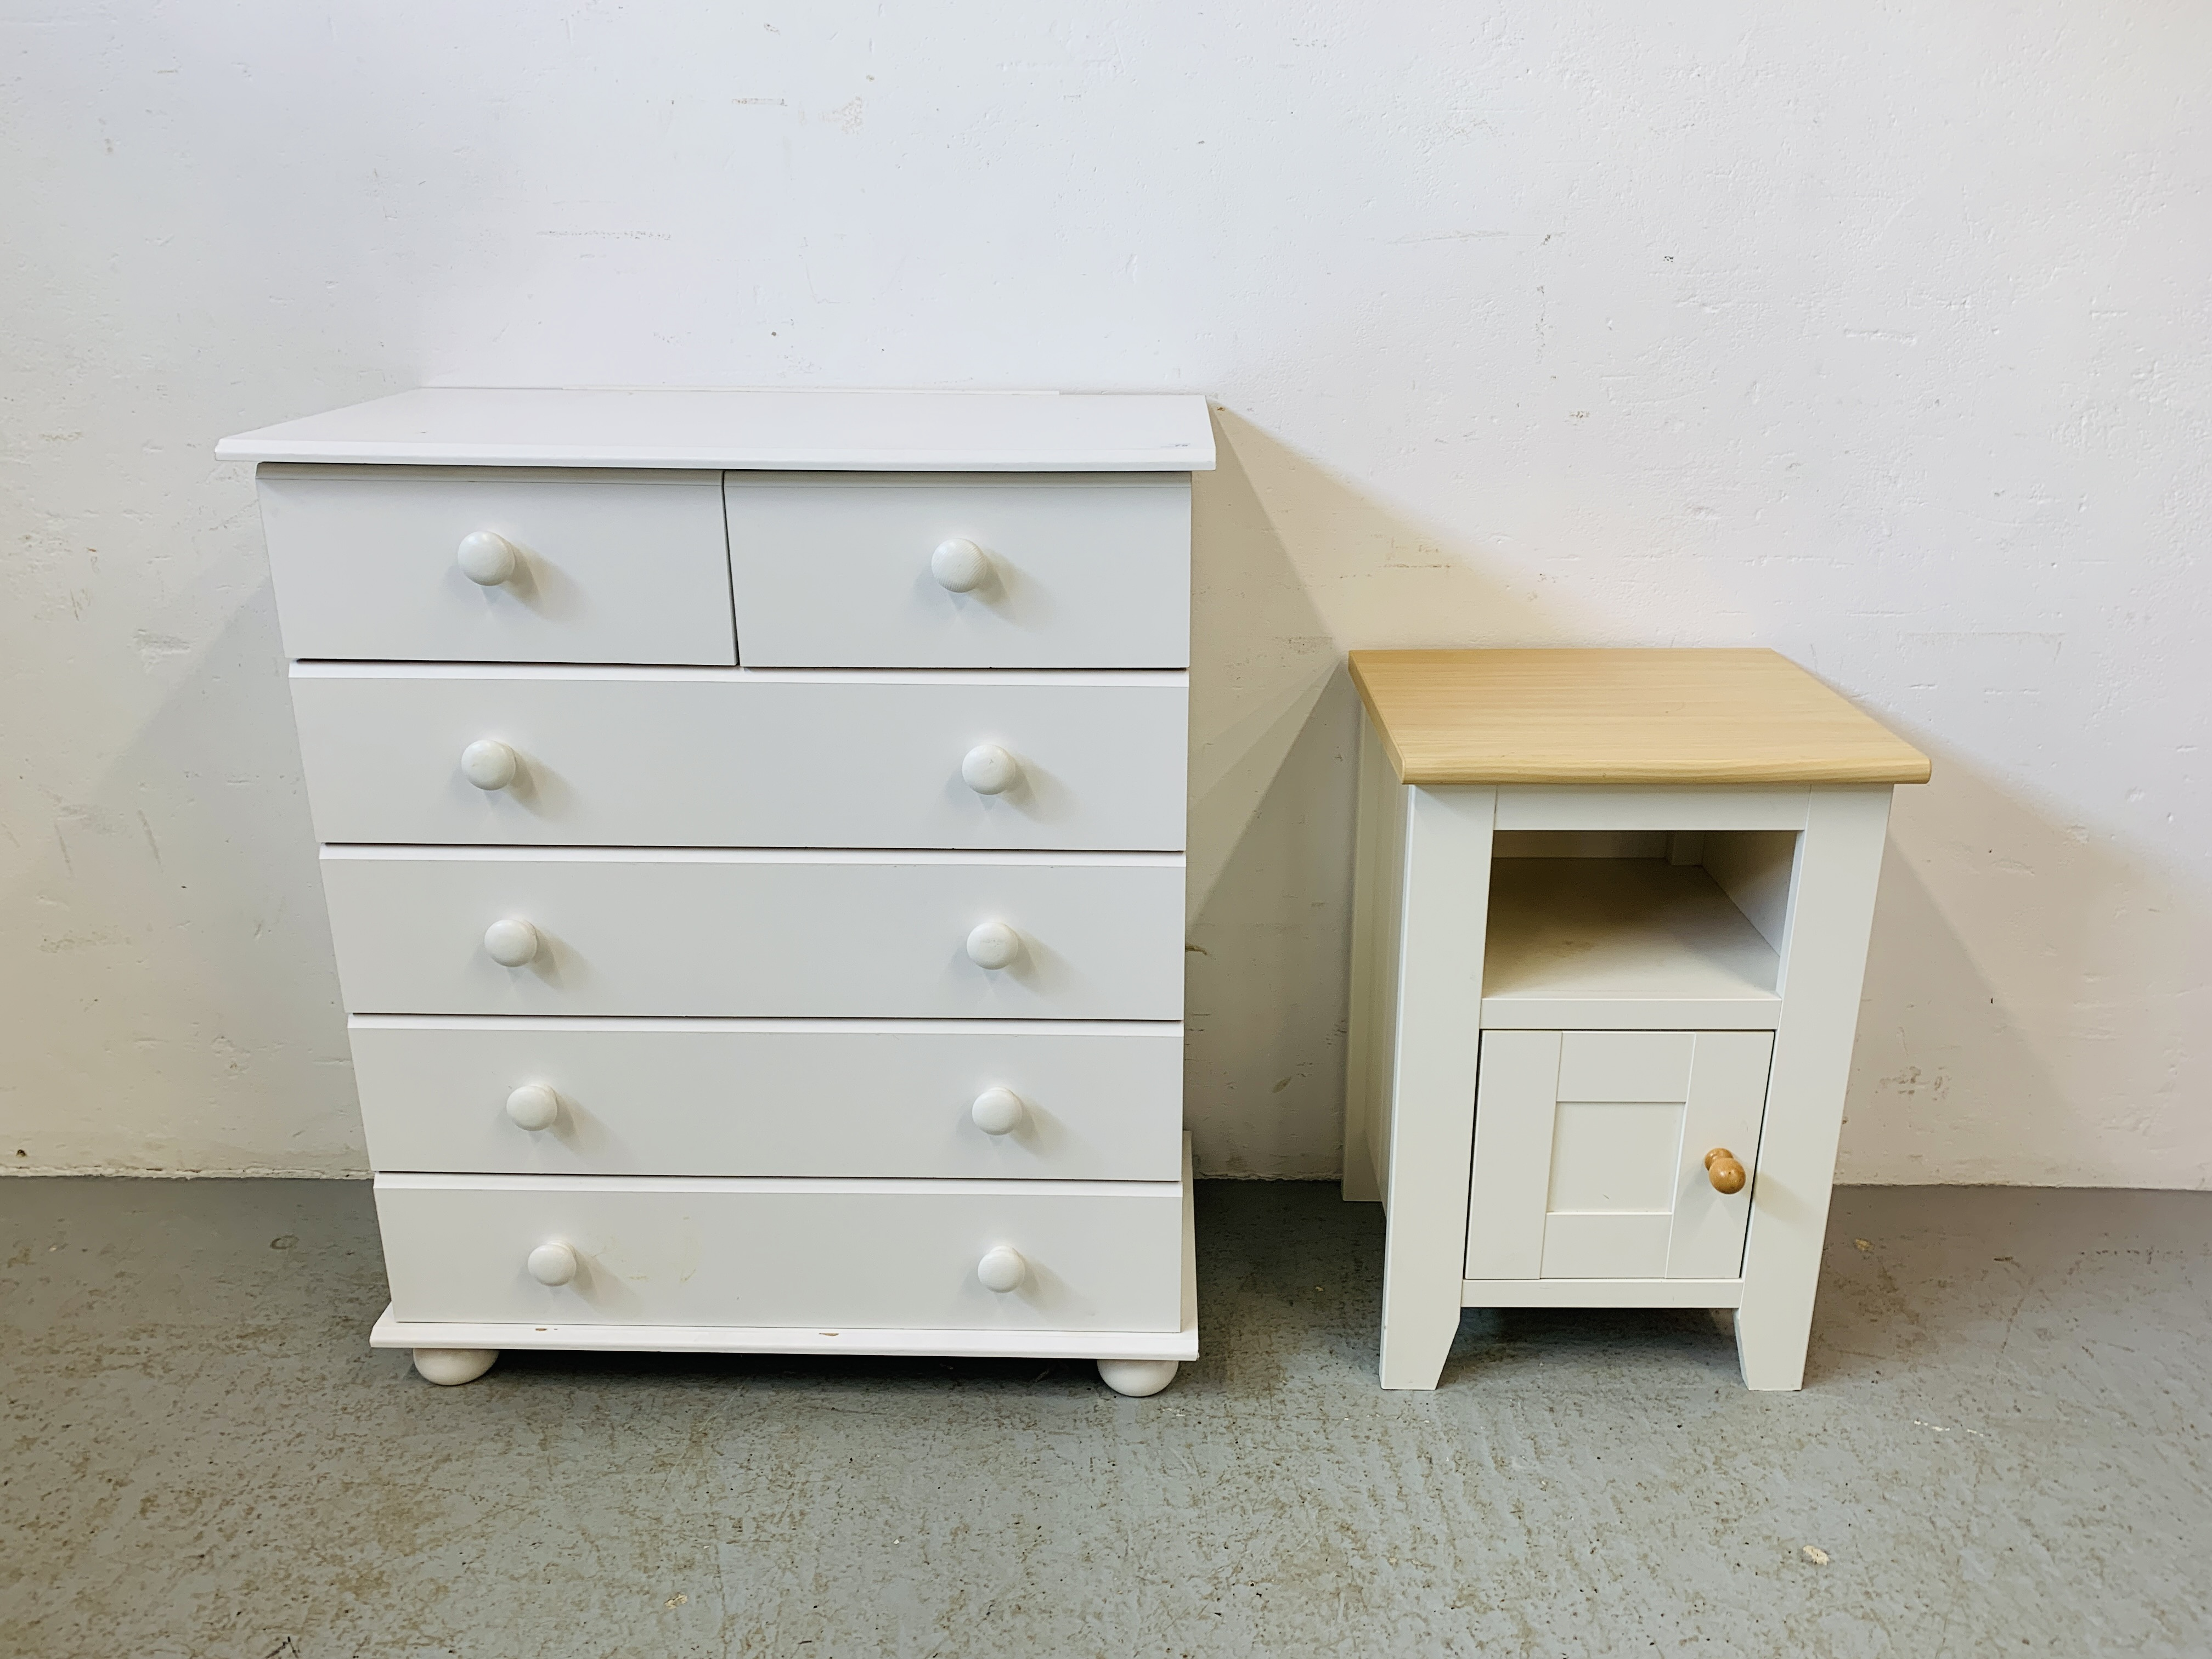 A MODERN WHITE FINISH TWO OVER FOUR CHEST OF DRAWERS - W 78CM. H 90CM. D 40CM.